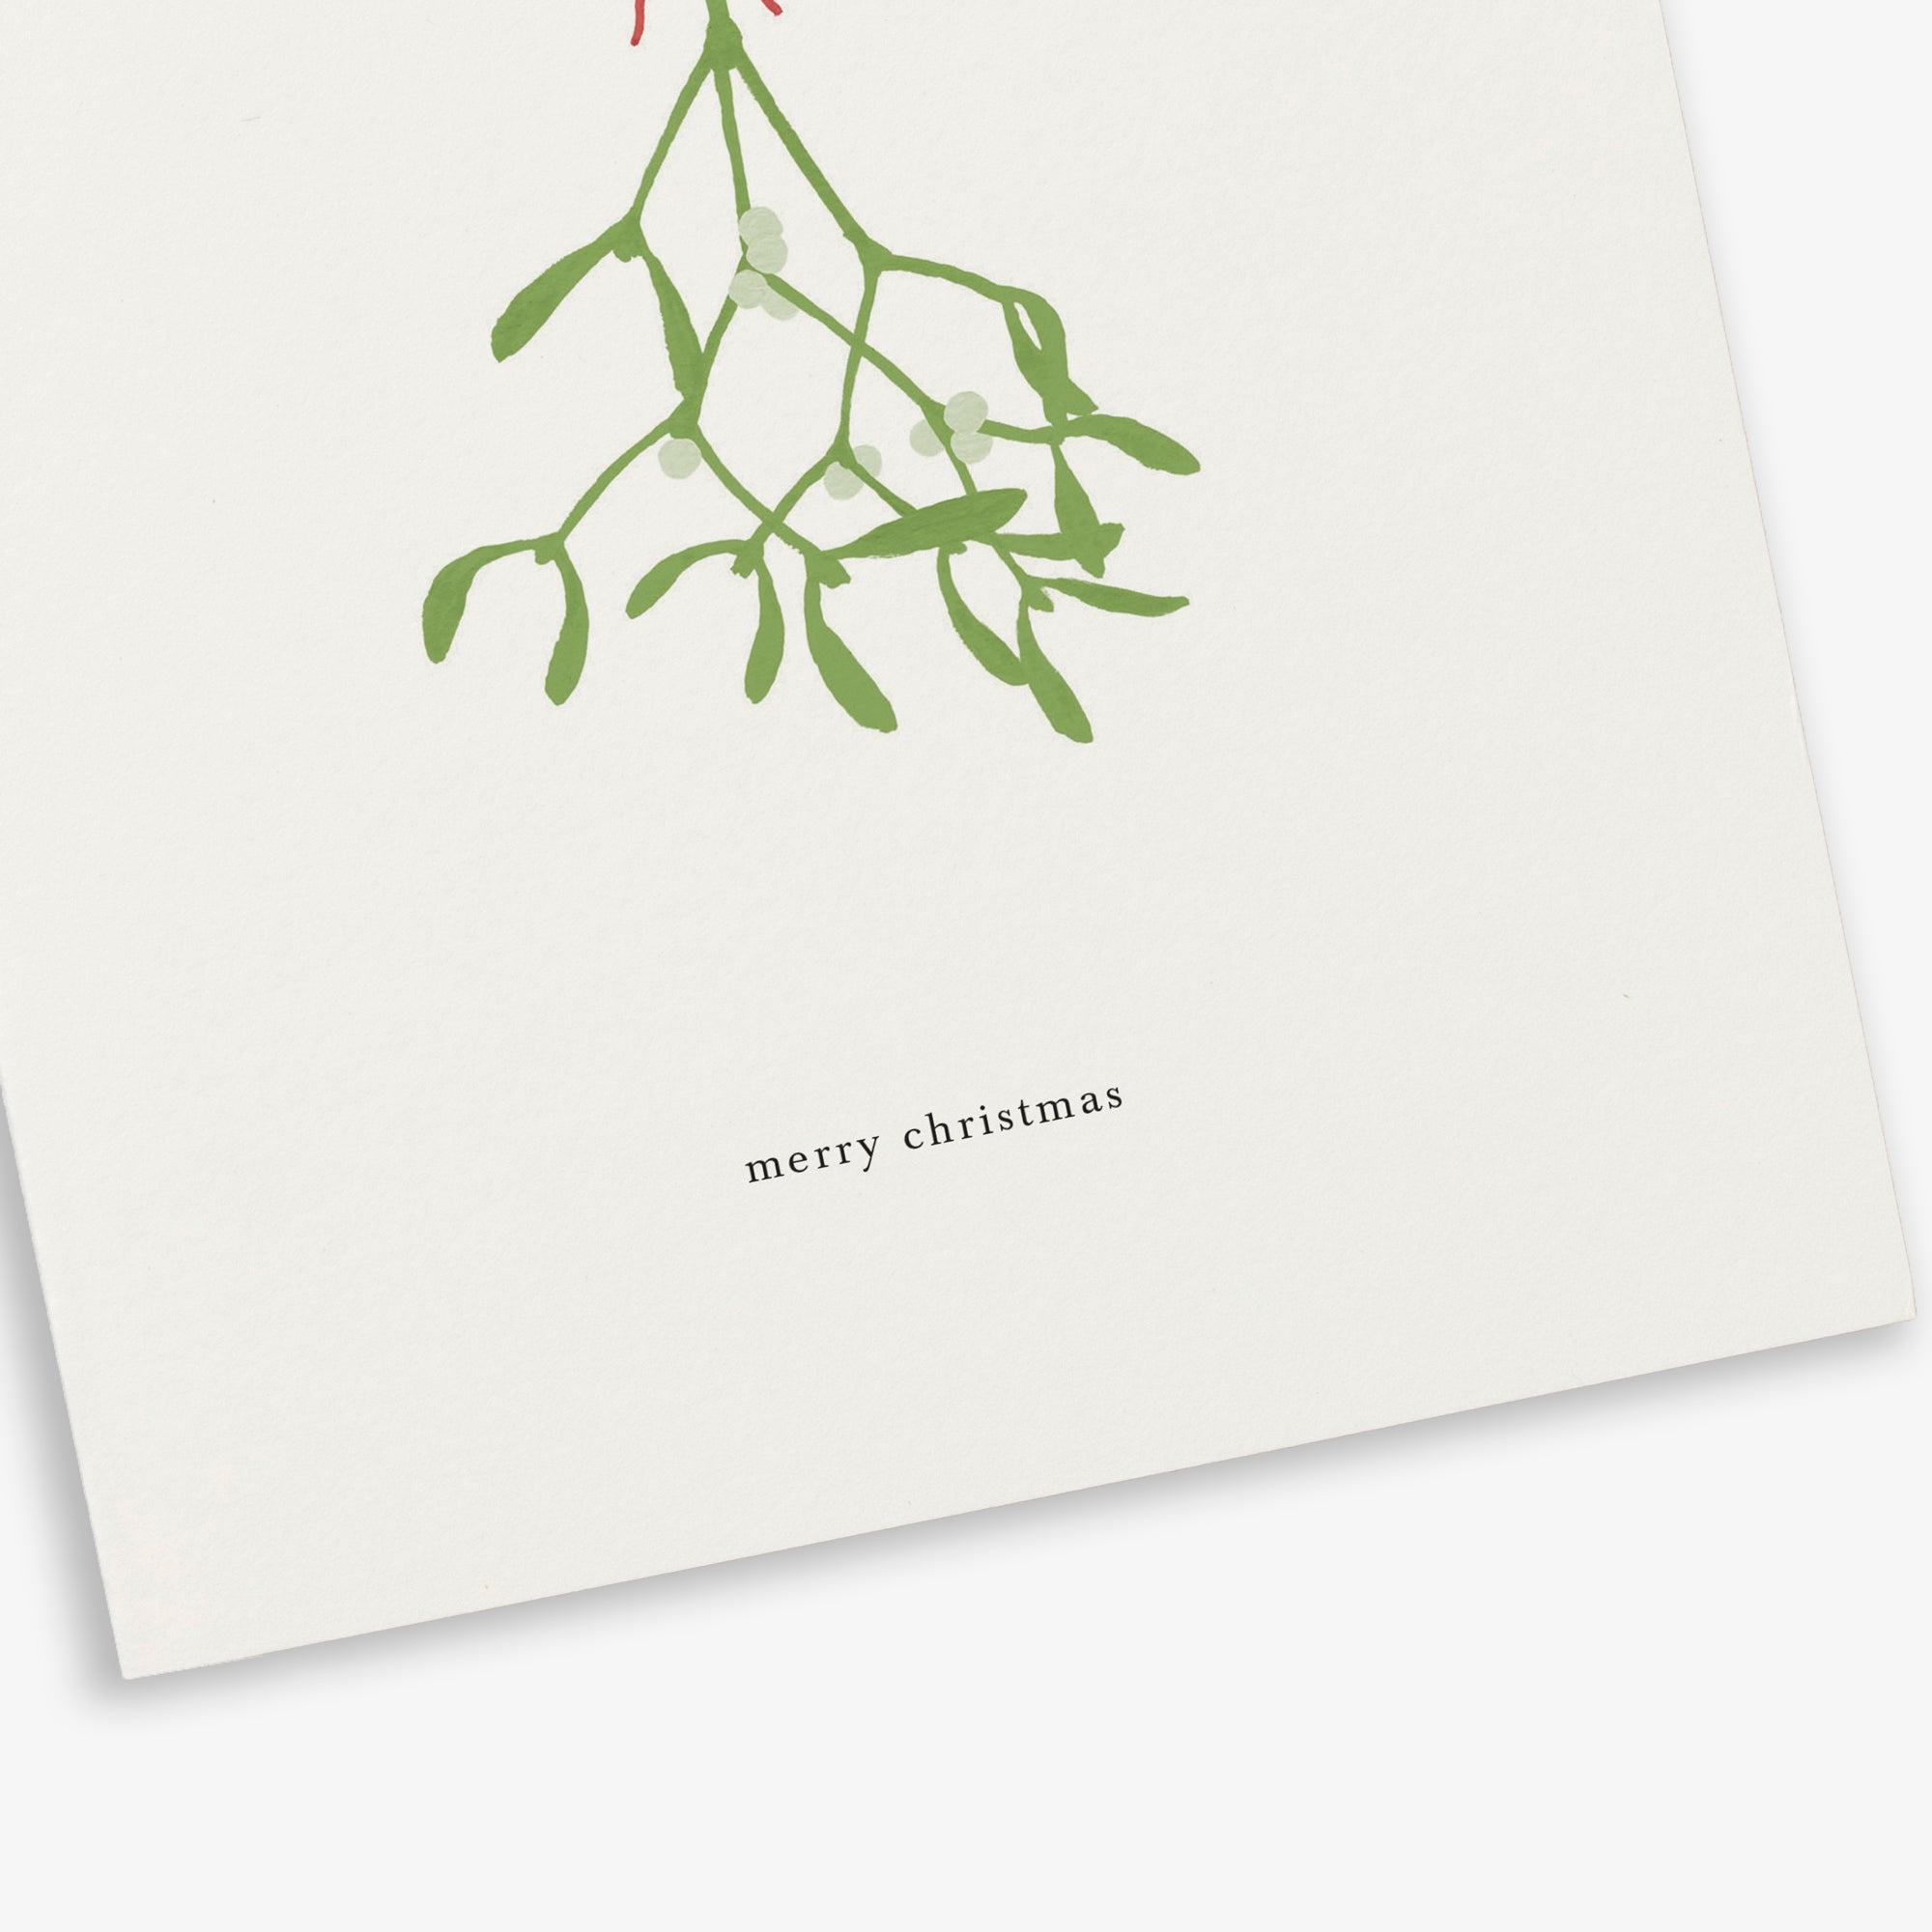 GREETING CARD / MISTLETOE